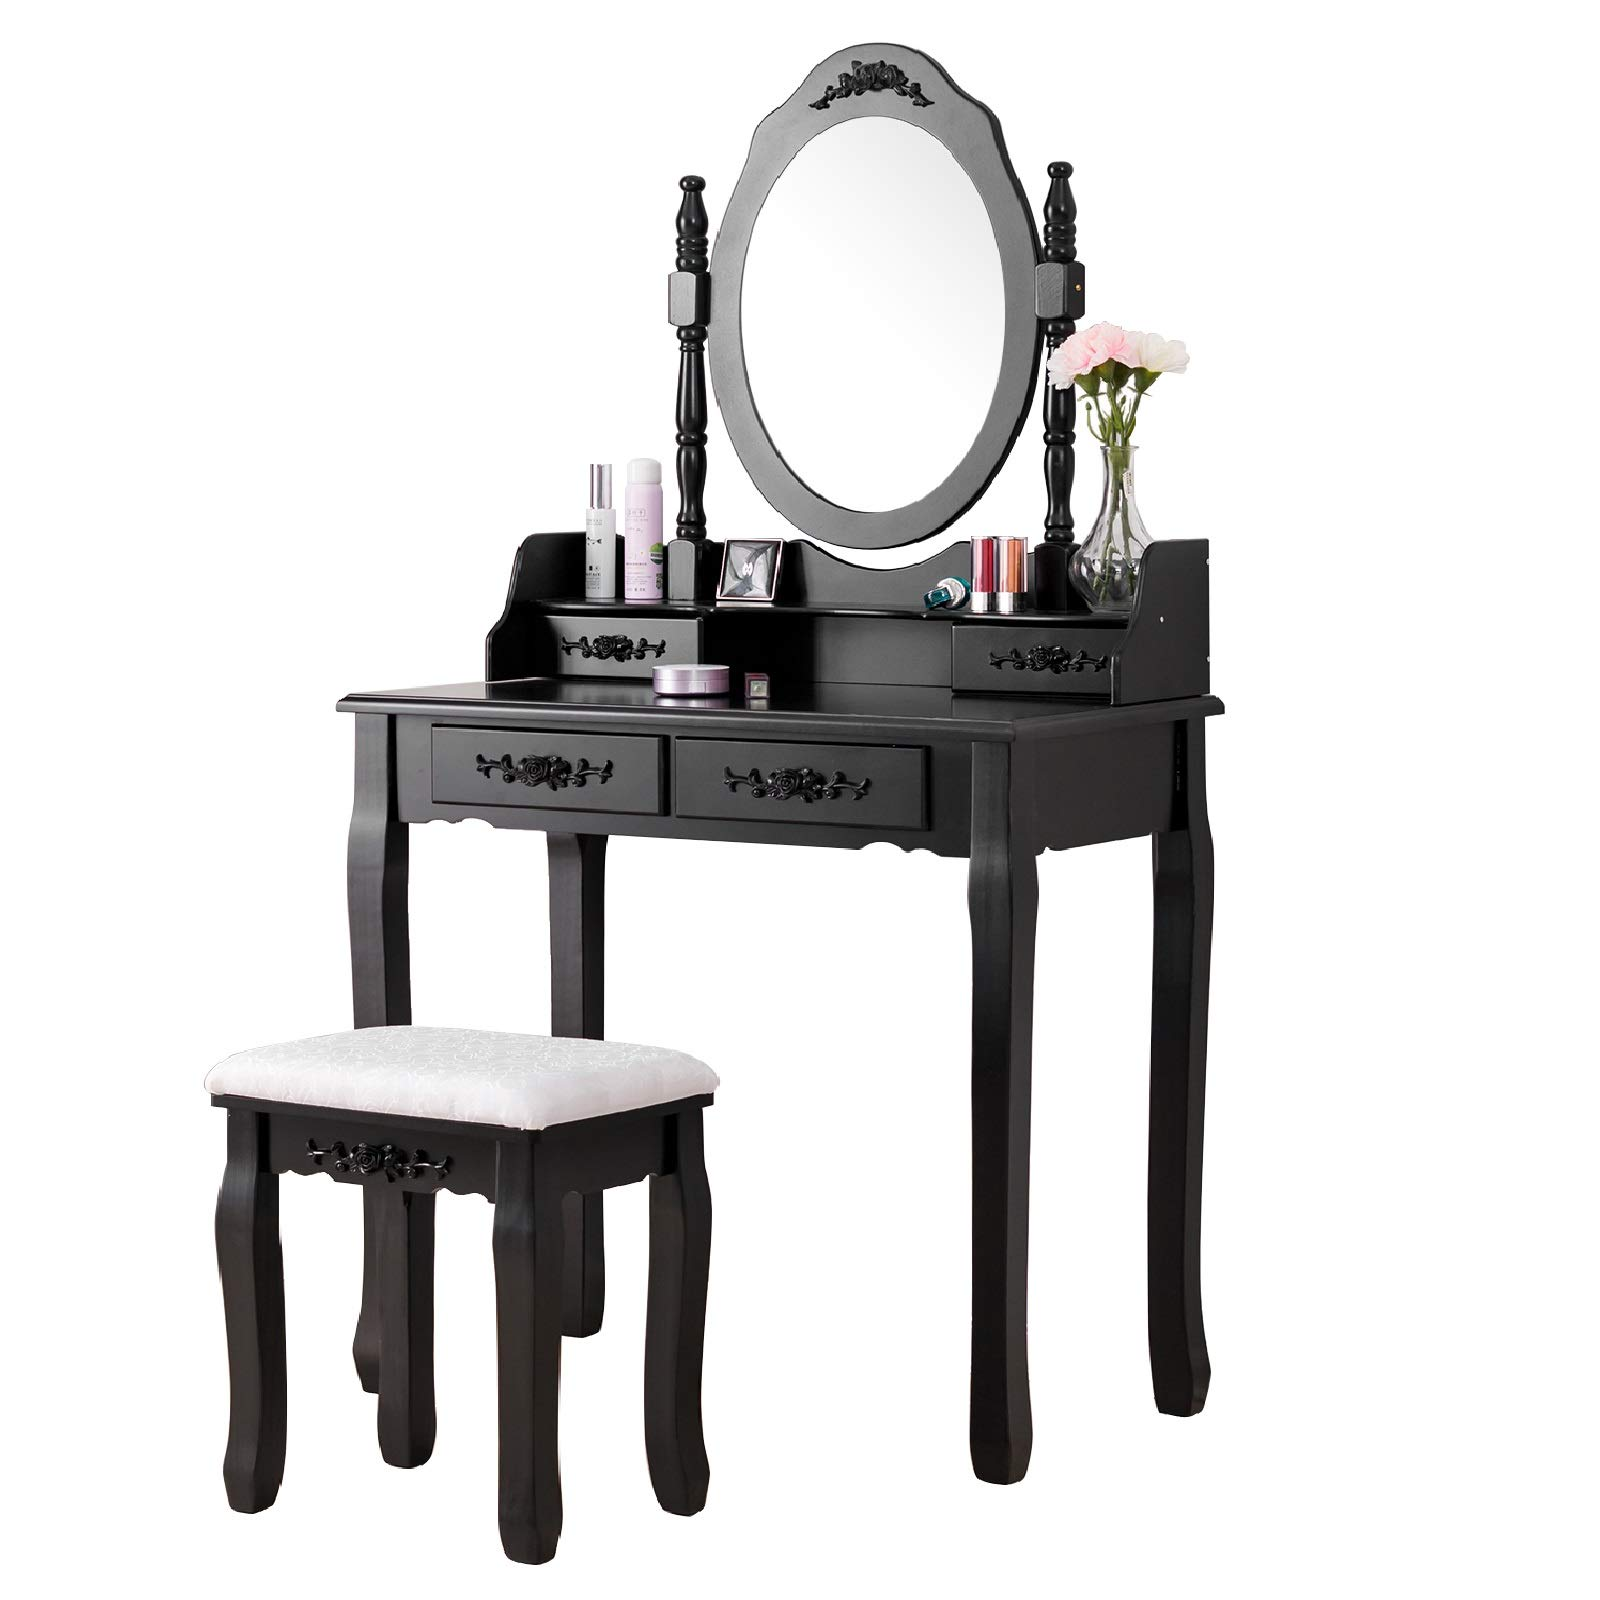 Mecor Vanity Table,Makeup Dressing Table with Oval Mirror,Bedroom Vanity Set w/Cushioned Stool 4 Drawers Women Girls Kids Black by Mecor